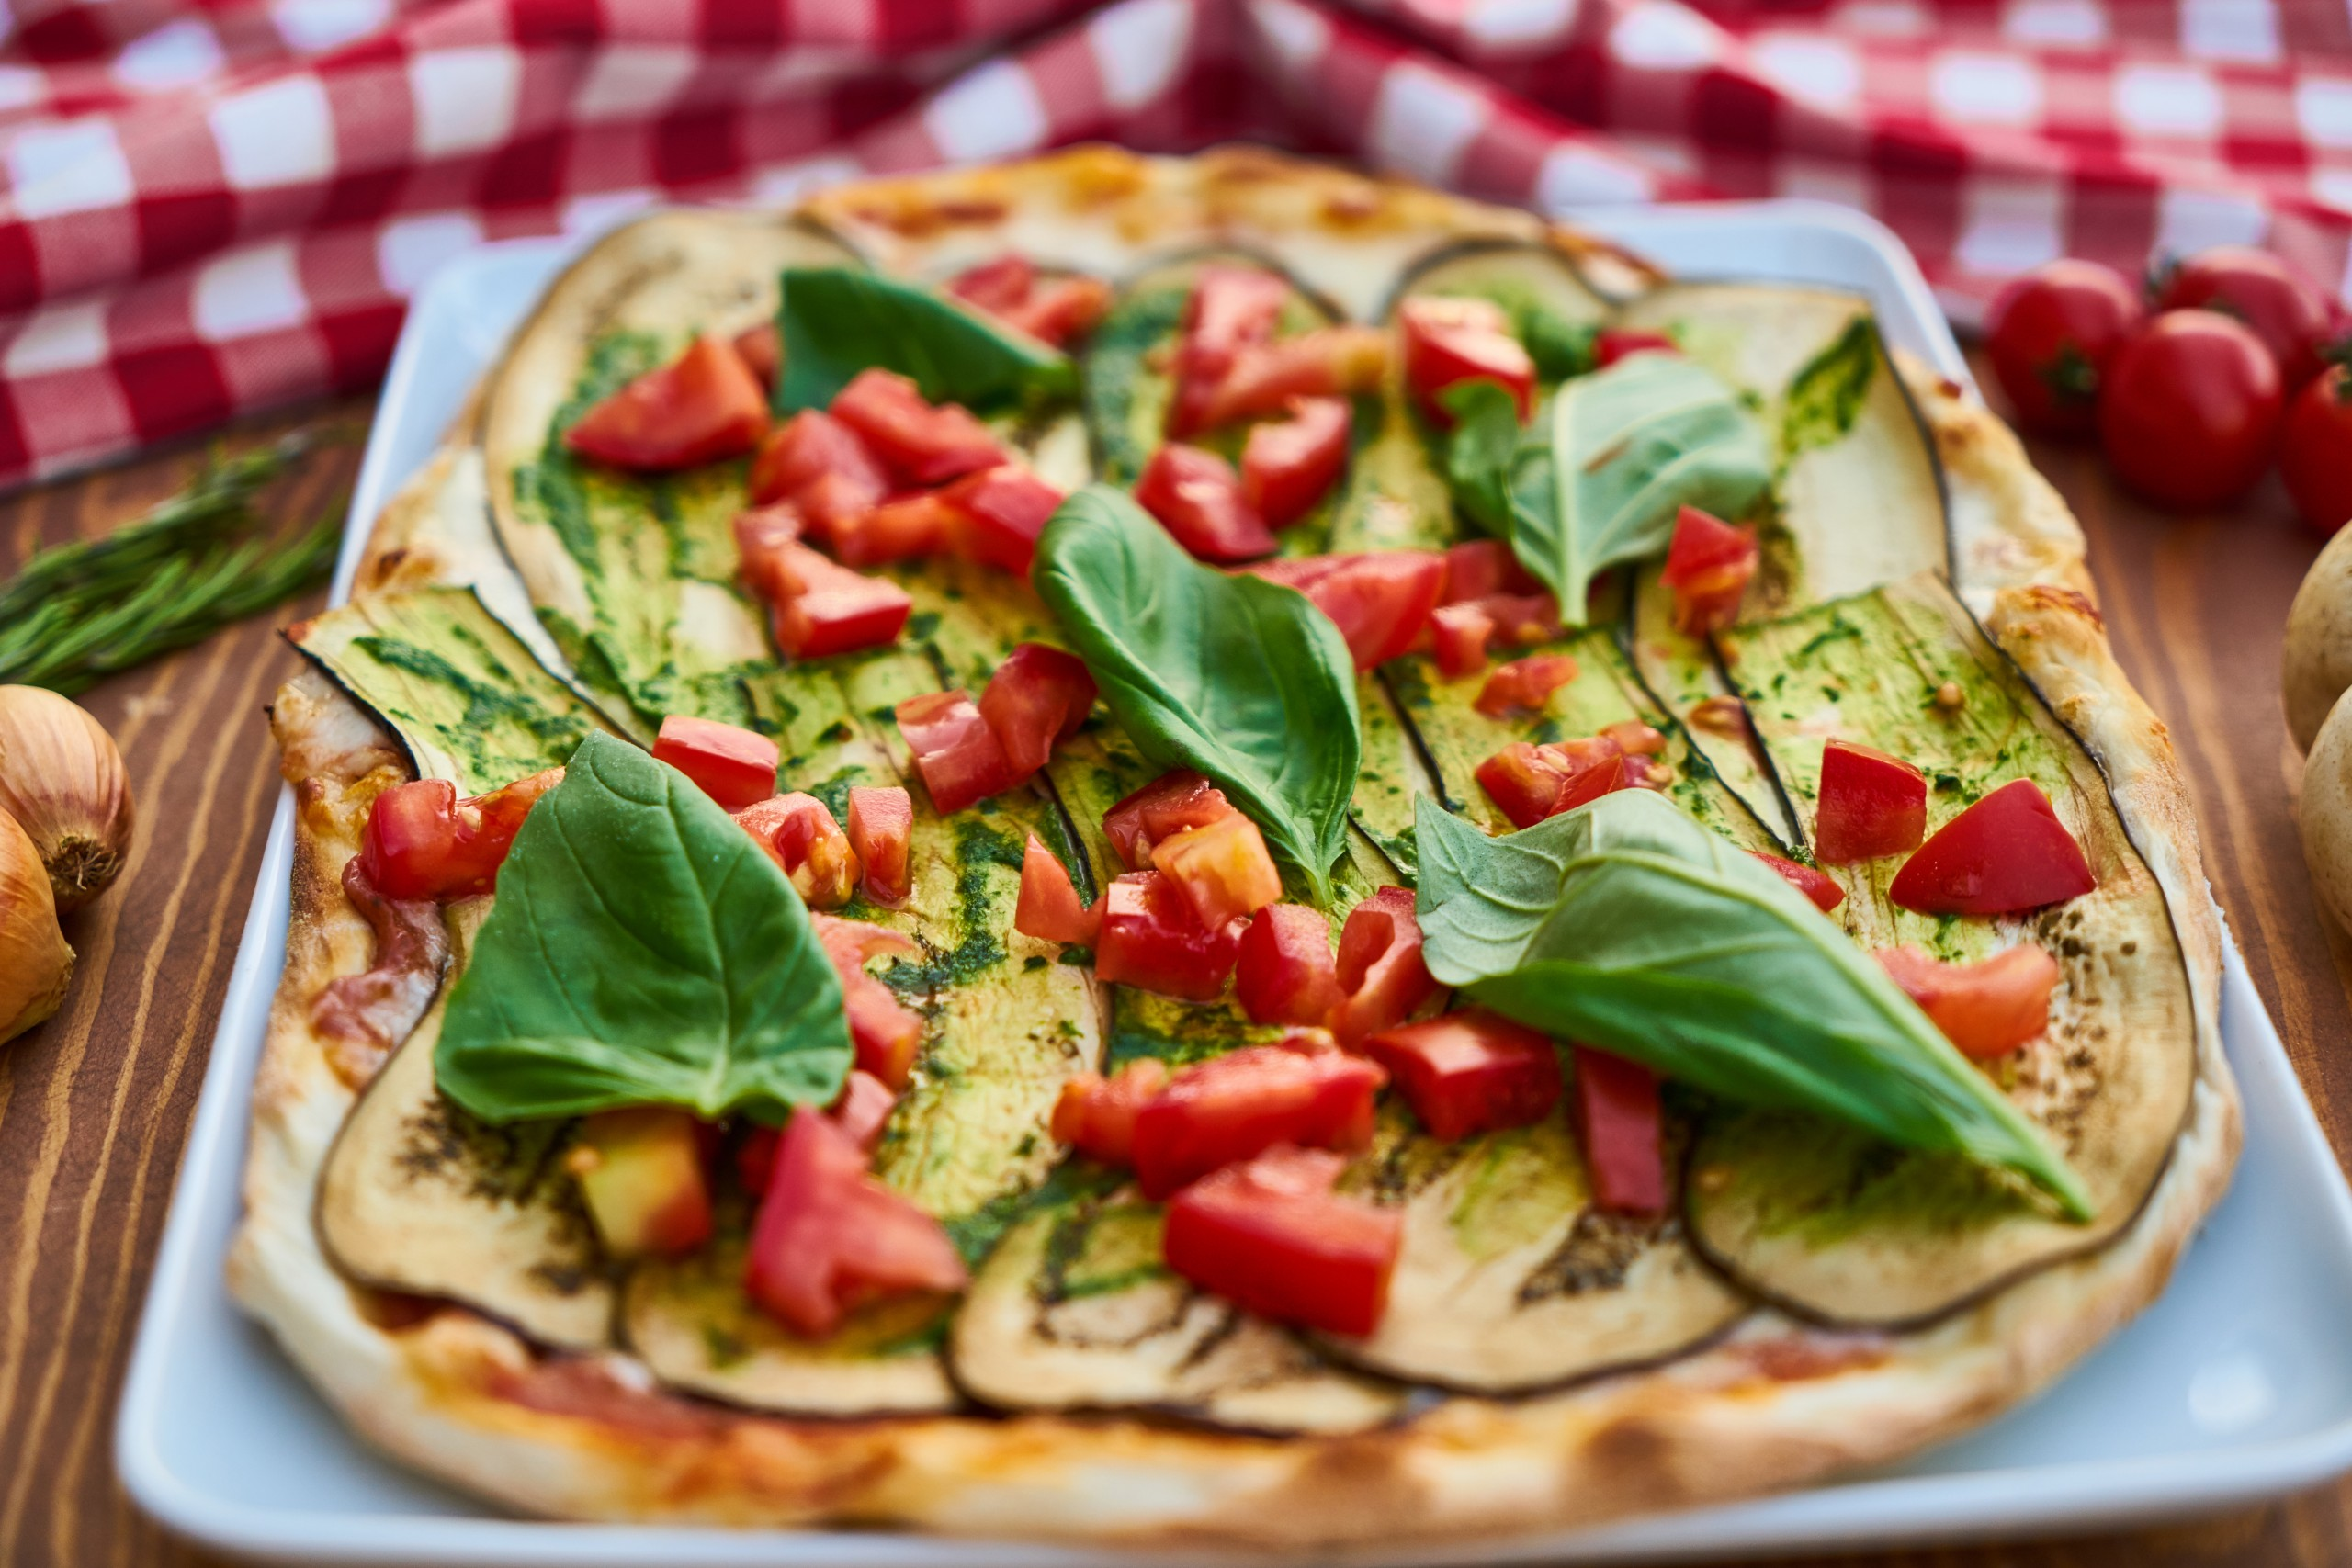 Flatbread Pizza with tomatoes and eggplant.